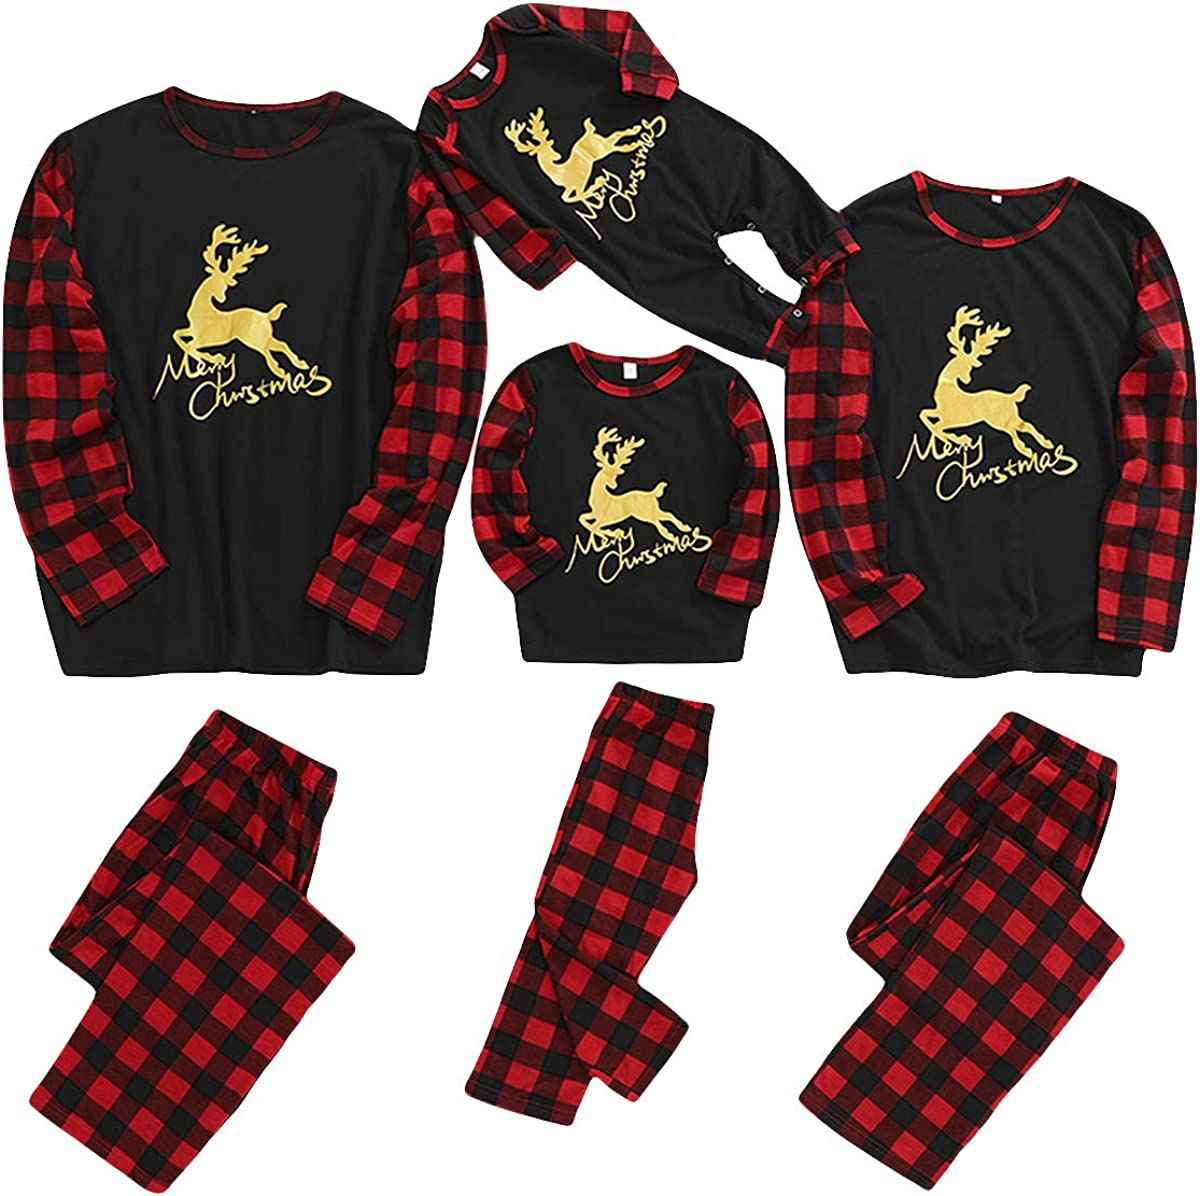 Matching Family Christmas PJ's Baby Pajamas Pl Holiday Women Beauty products Men Max 44% OFF